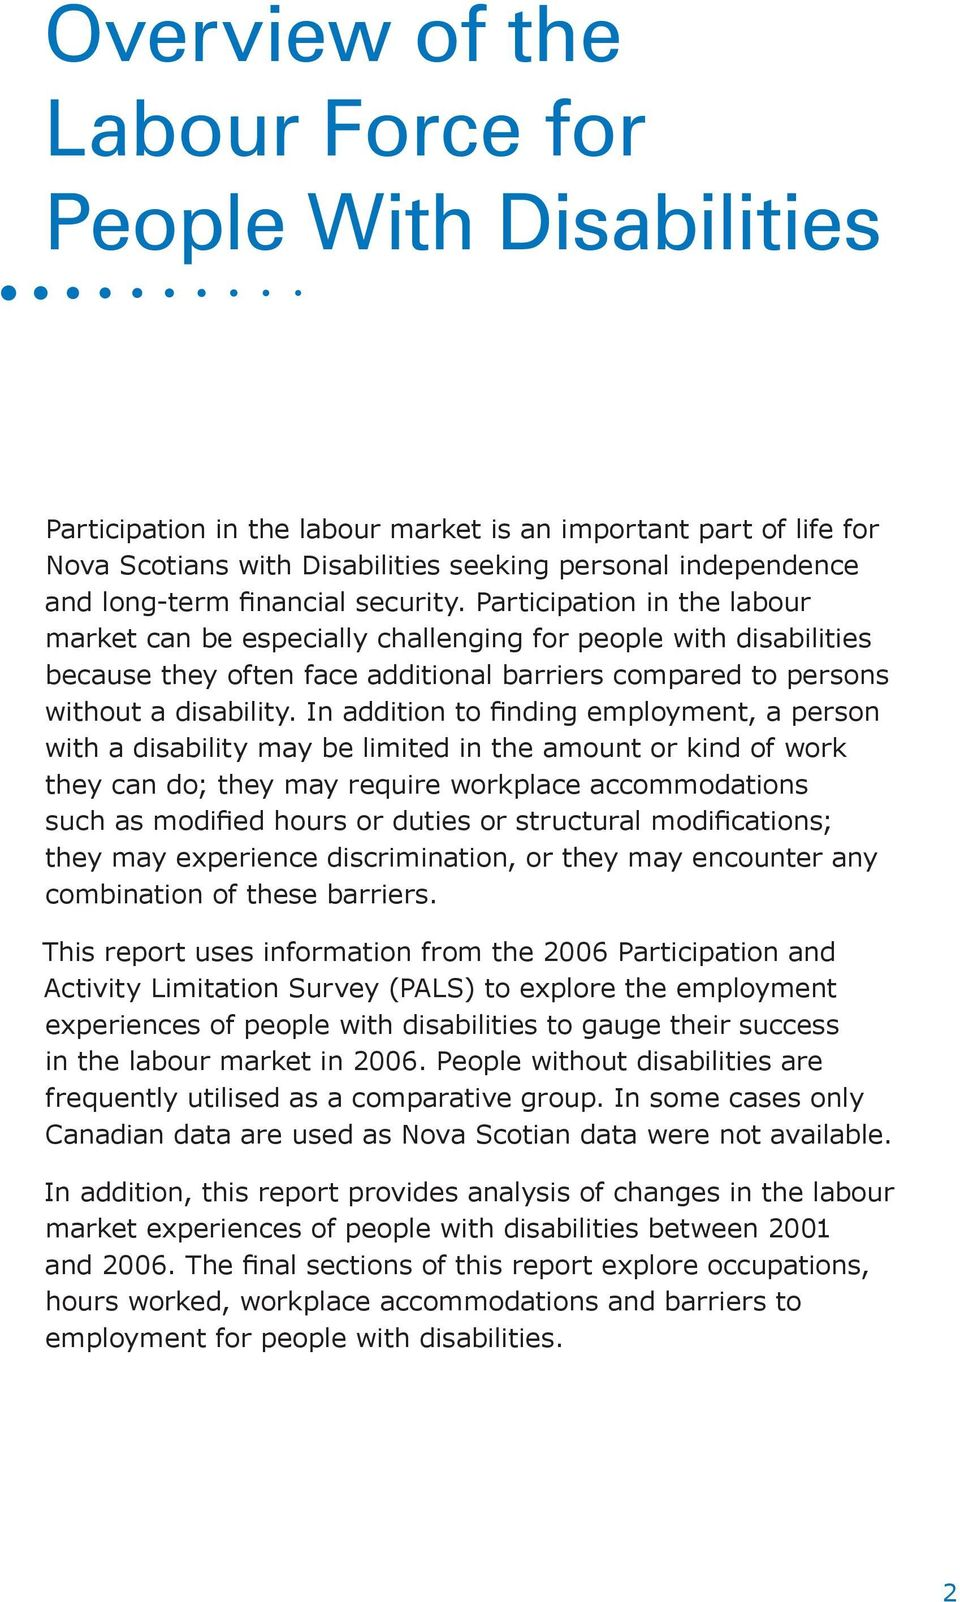 Participation in the labour market can be especially challenging for people with disabilities because they often face additional barriers compared to persons without a disability.